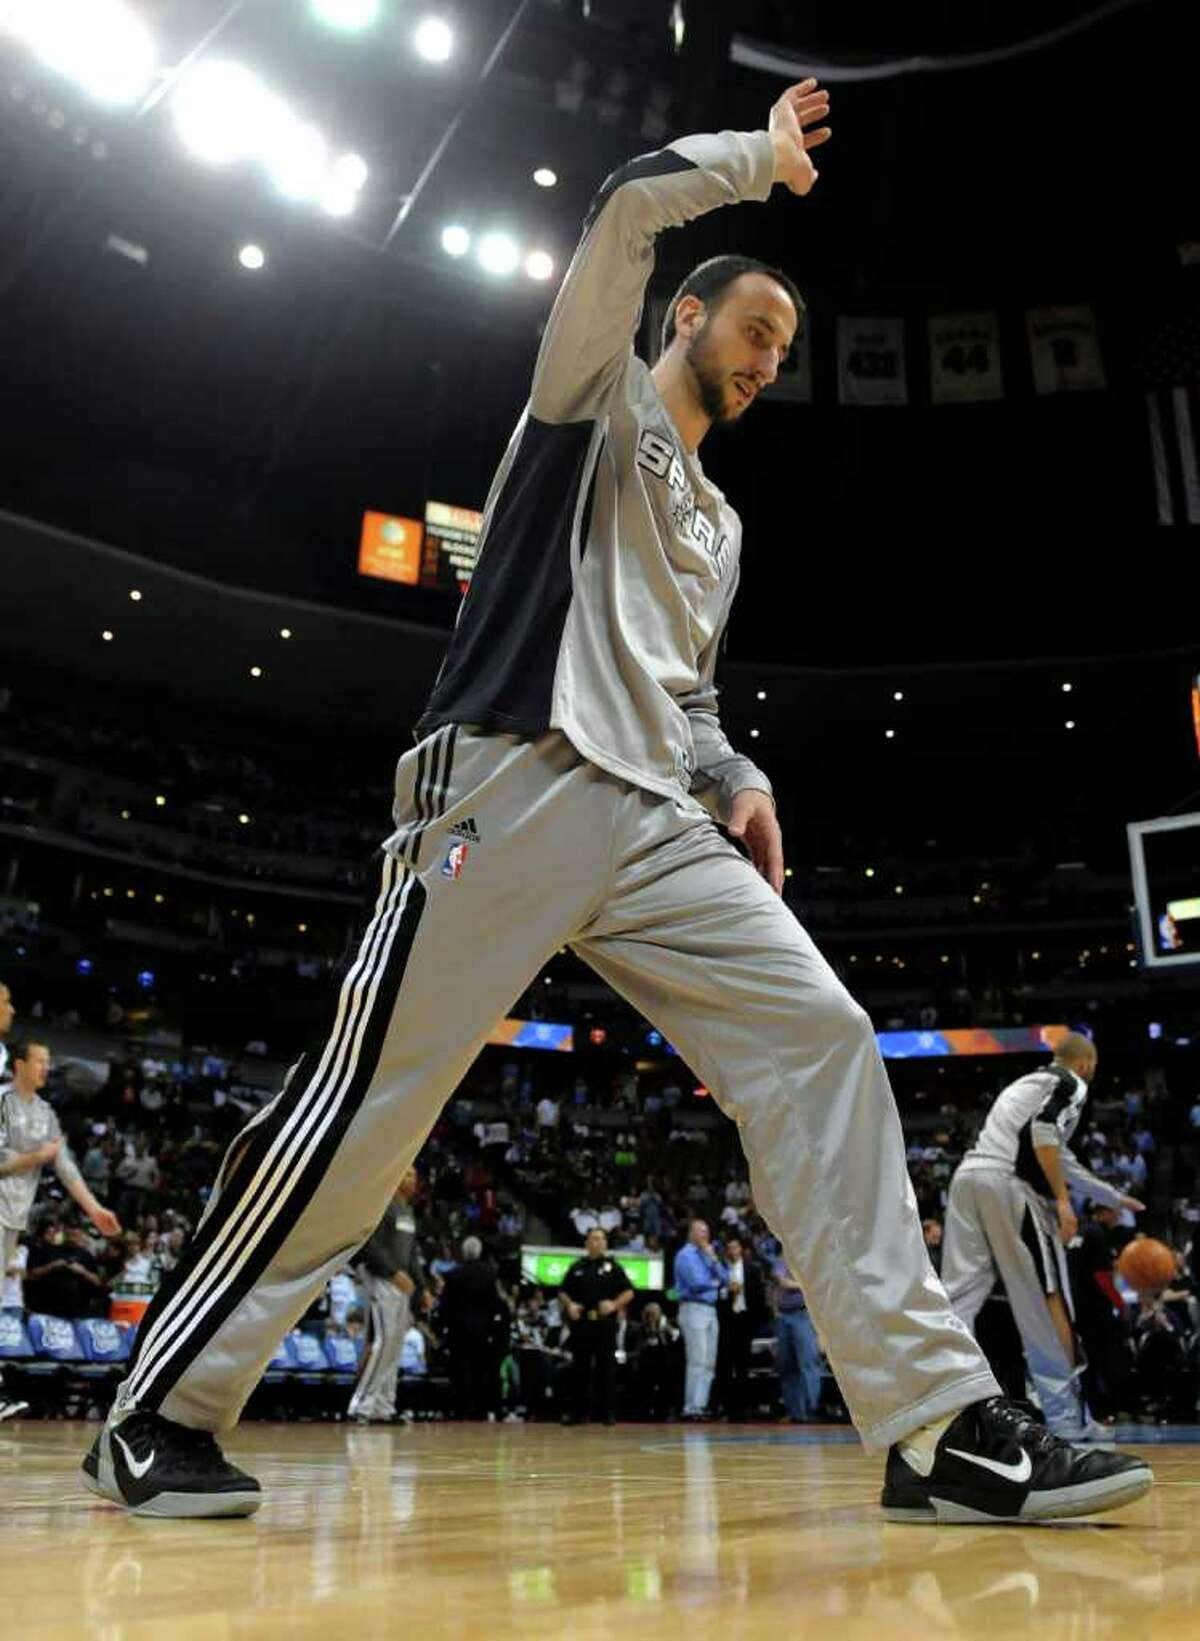 San Antonio Spurs guard Manu Ginobili, from Argentina, stretches before the Spurs' NBA basketball game against the Denver Nuggets on Wednesday, March 23, 2011, in Denver.